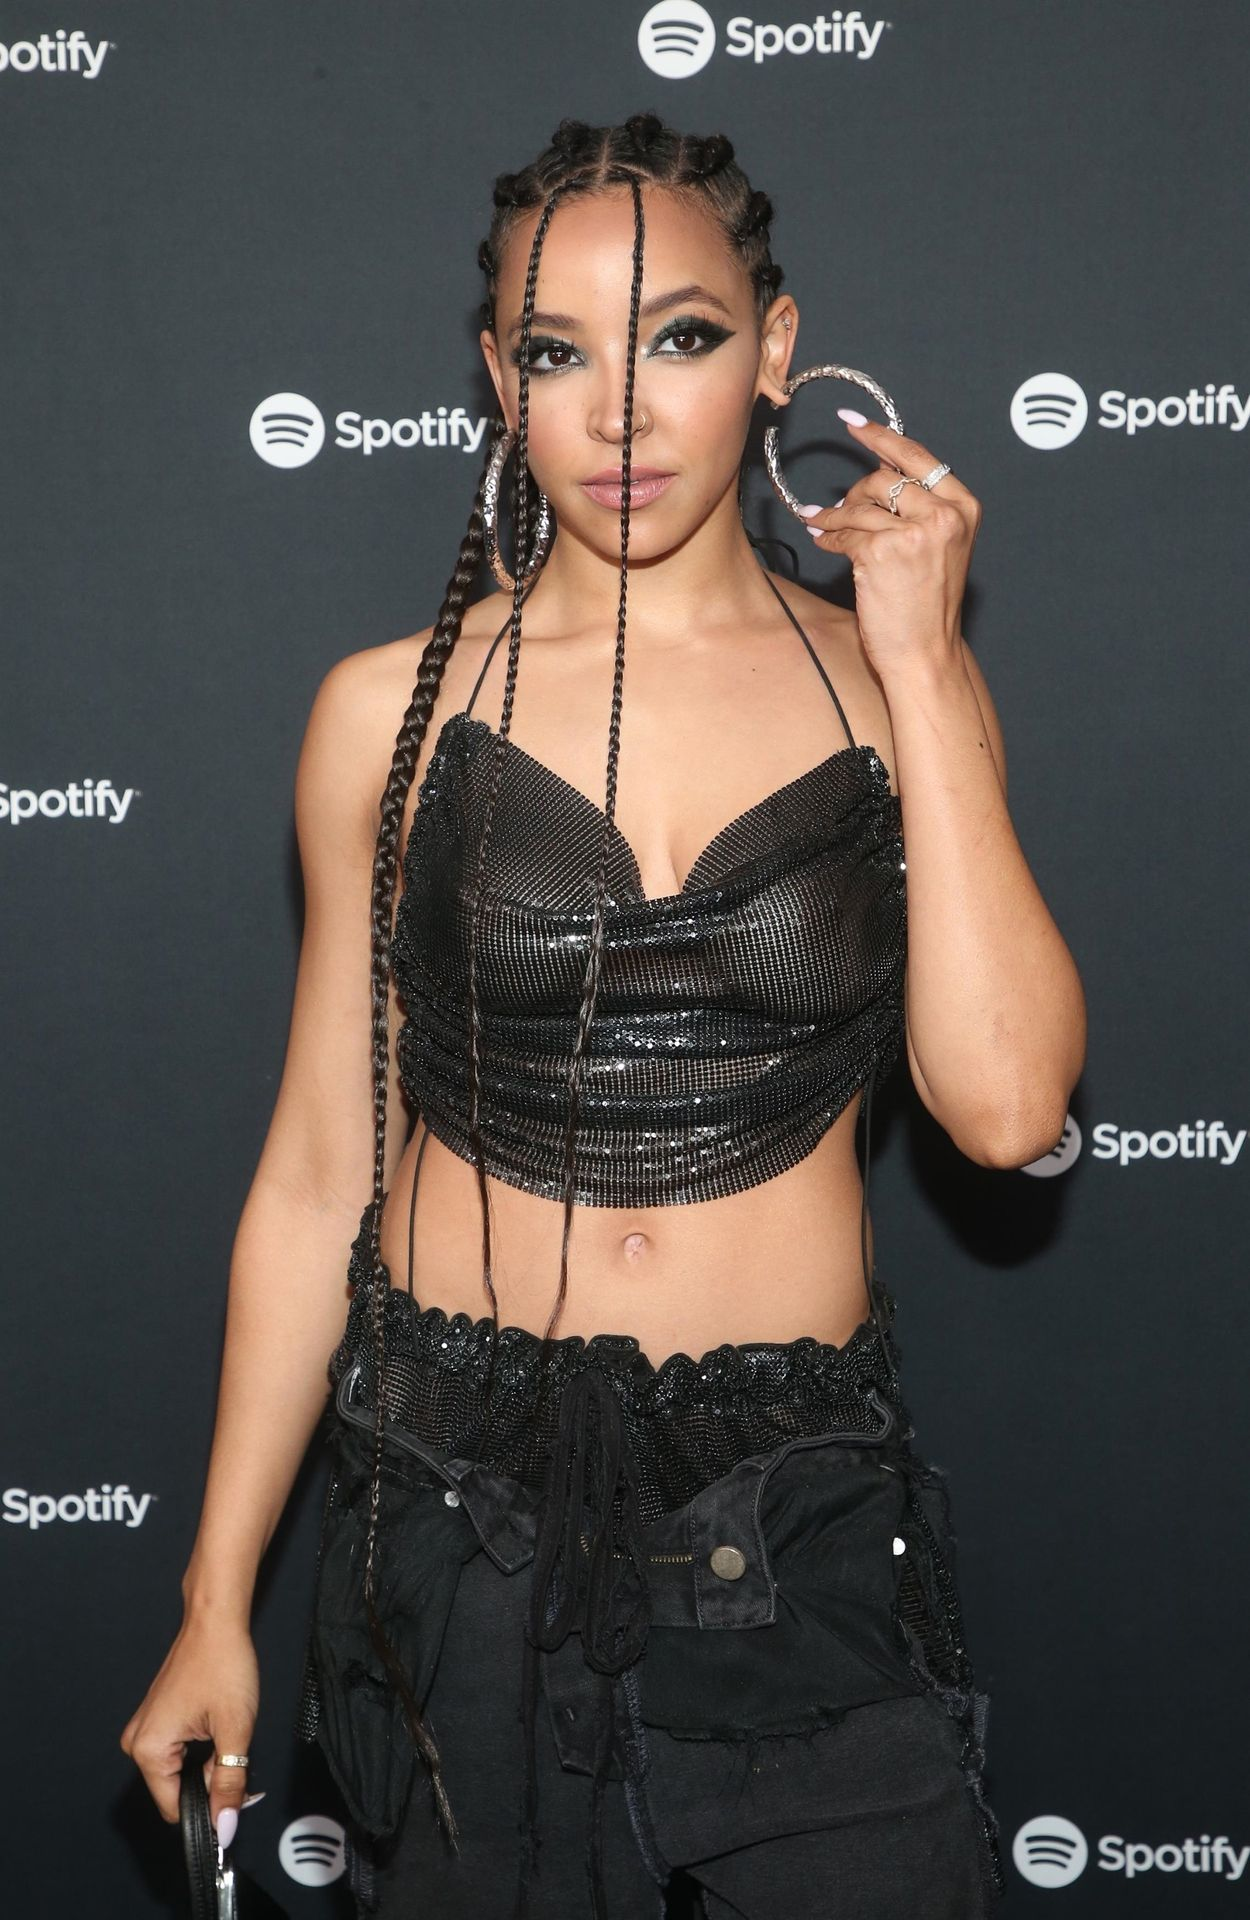 Tinashe Flaunts Her Tits At The Spotify Best New Artist Party 0014